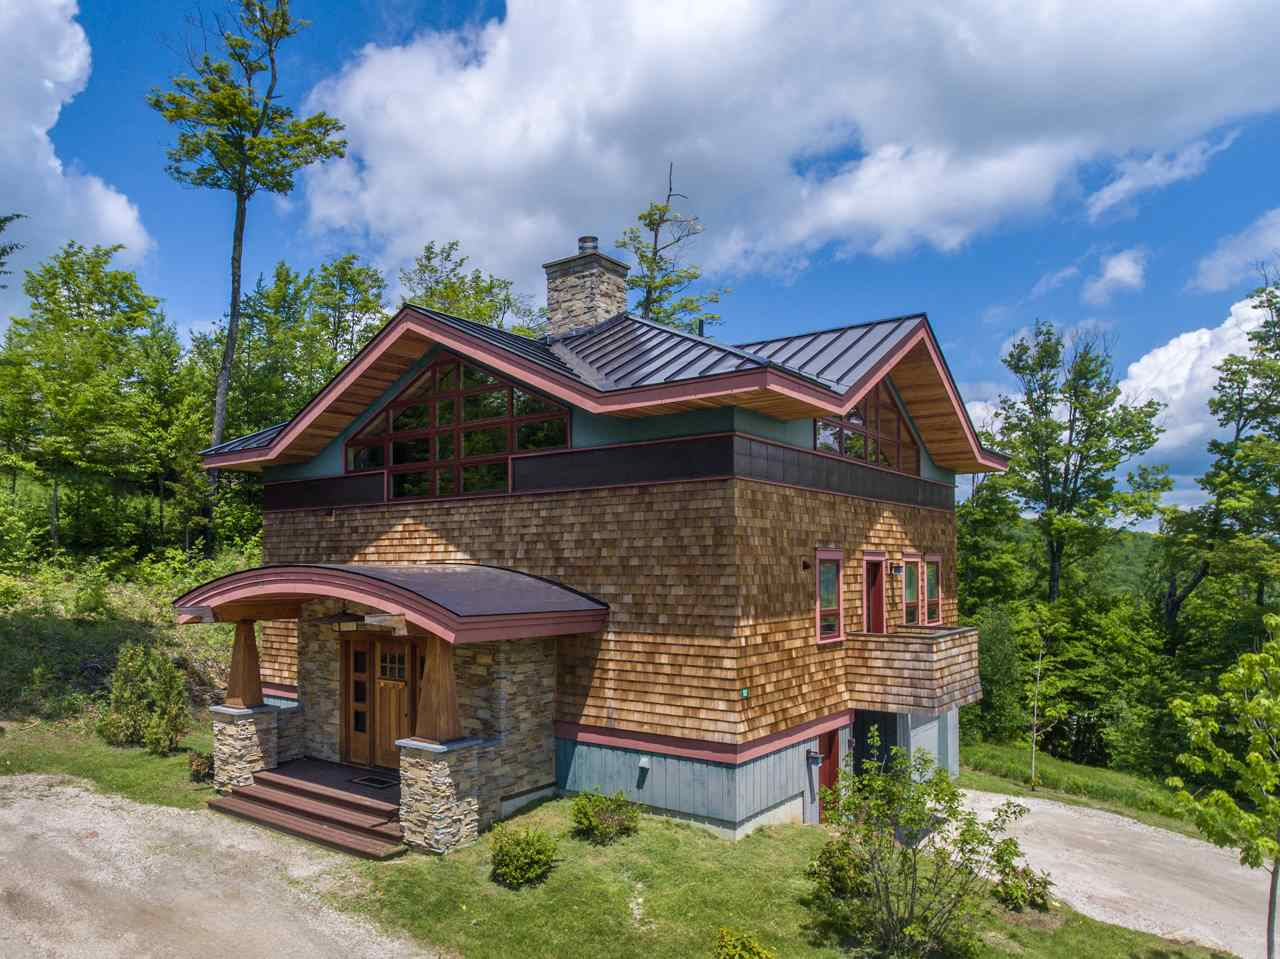 Photo of 92 Vistas Drive Killington VT 05751